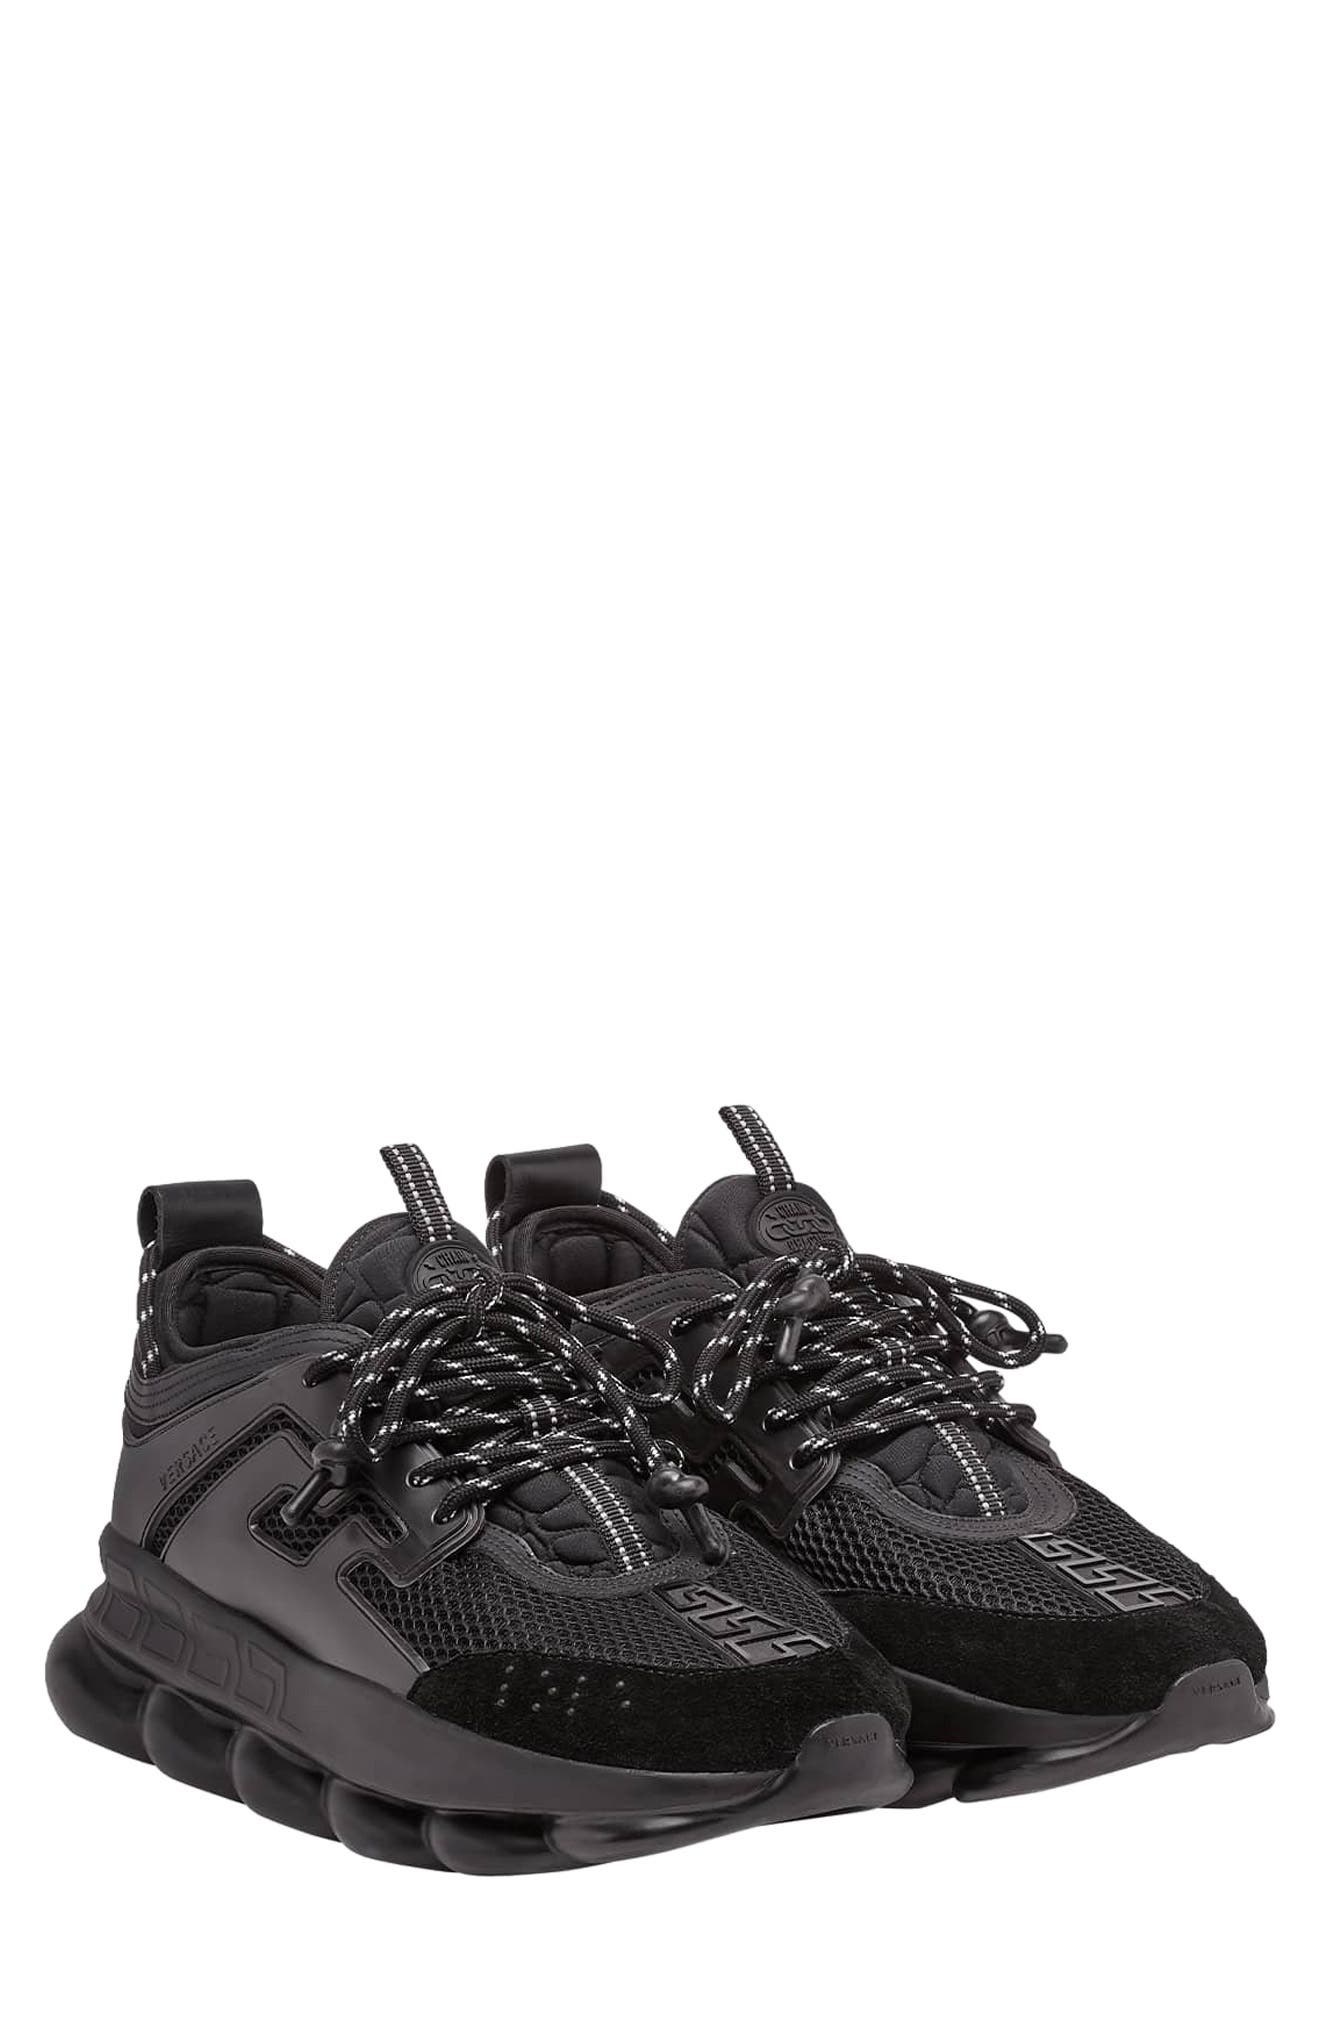 VERSACE FIRST LINE Versace Chain Reaction Sneaker, Main, color, NERO